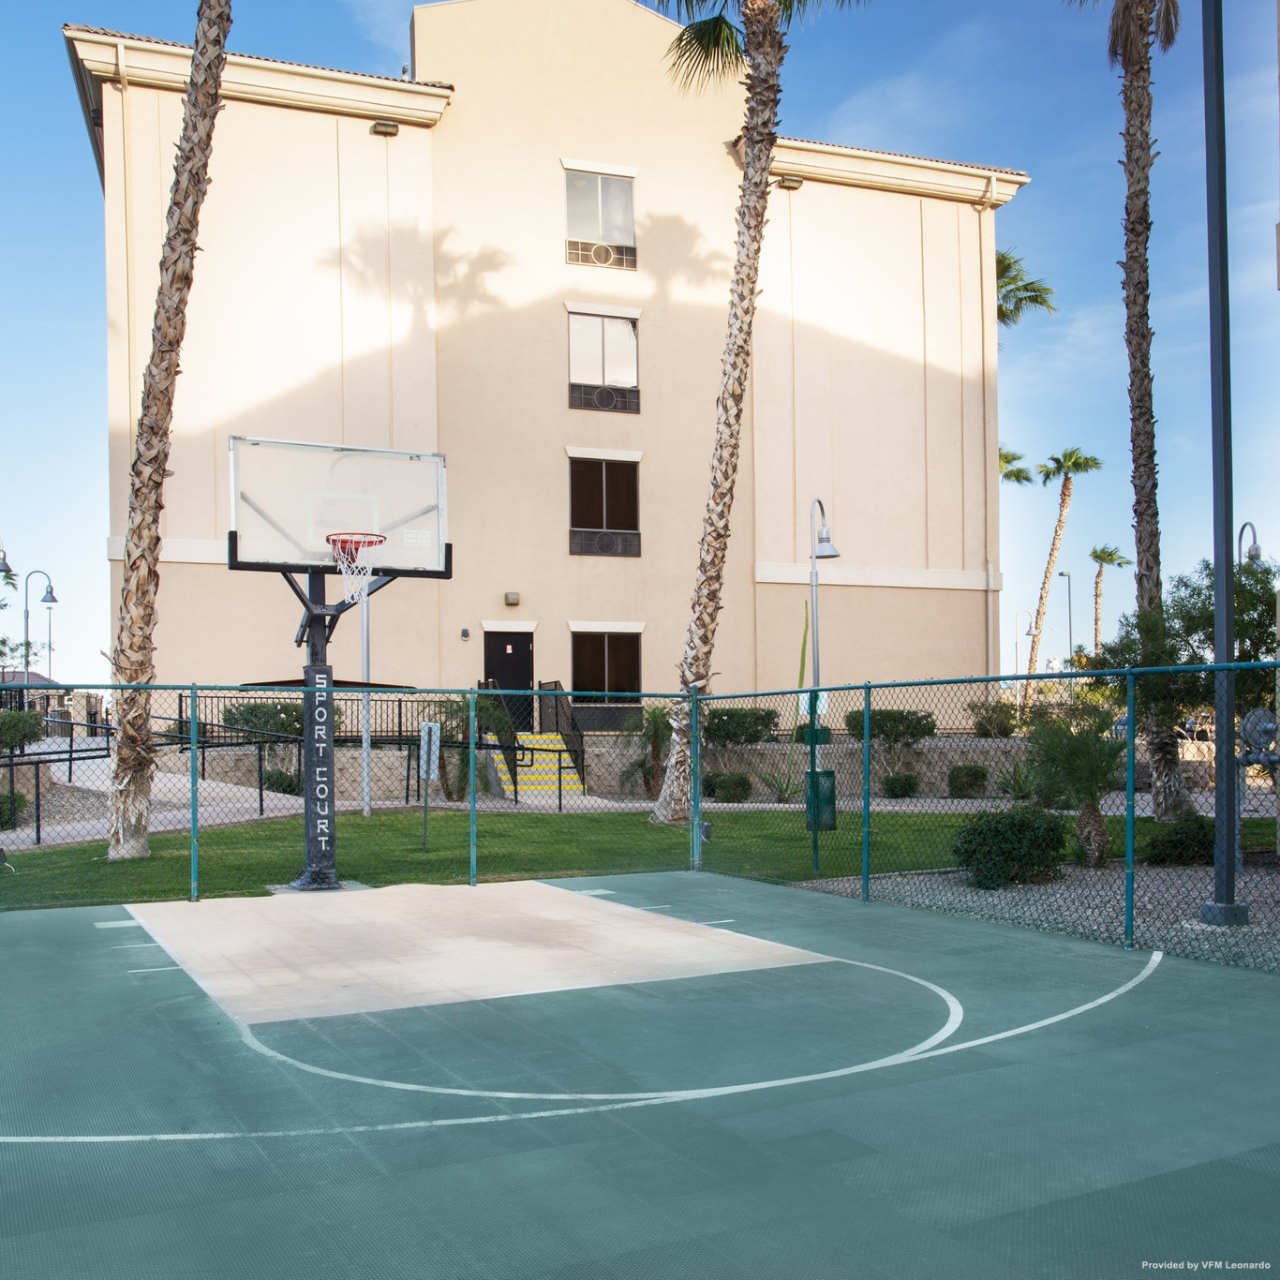 Hotel Candlewood Suites Yuma United States Of America At Hrs With Free Services